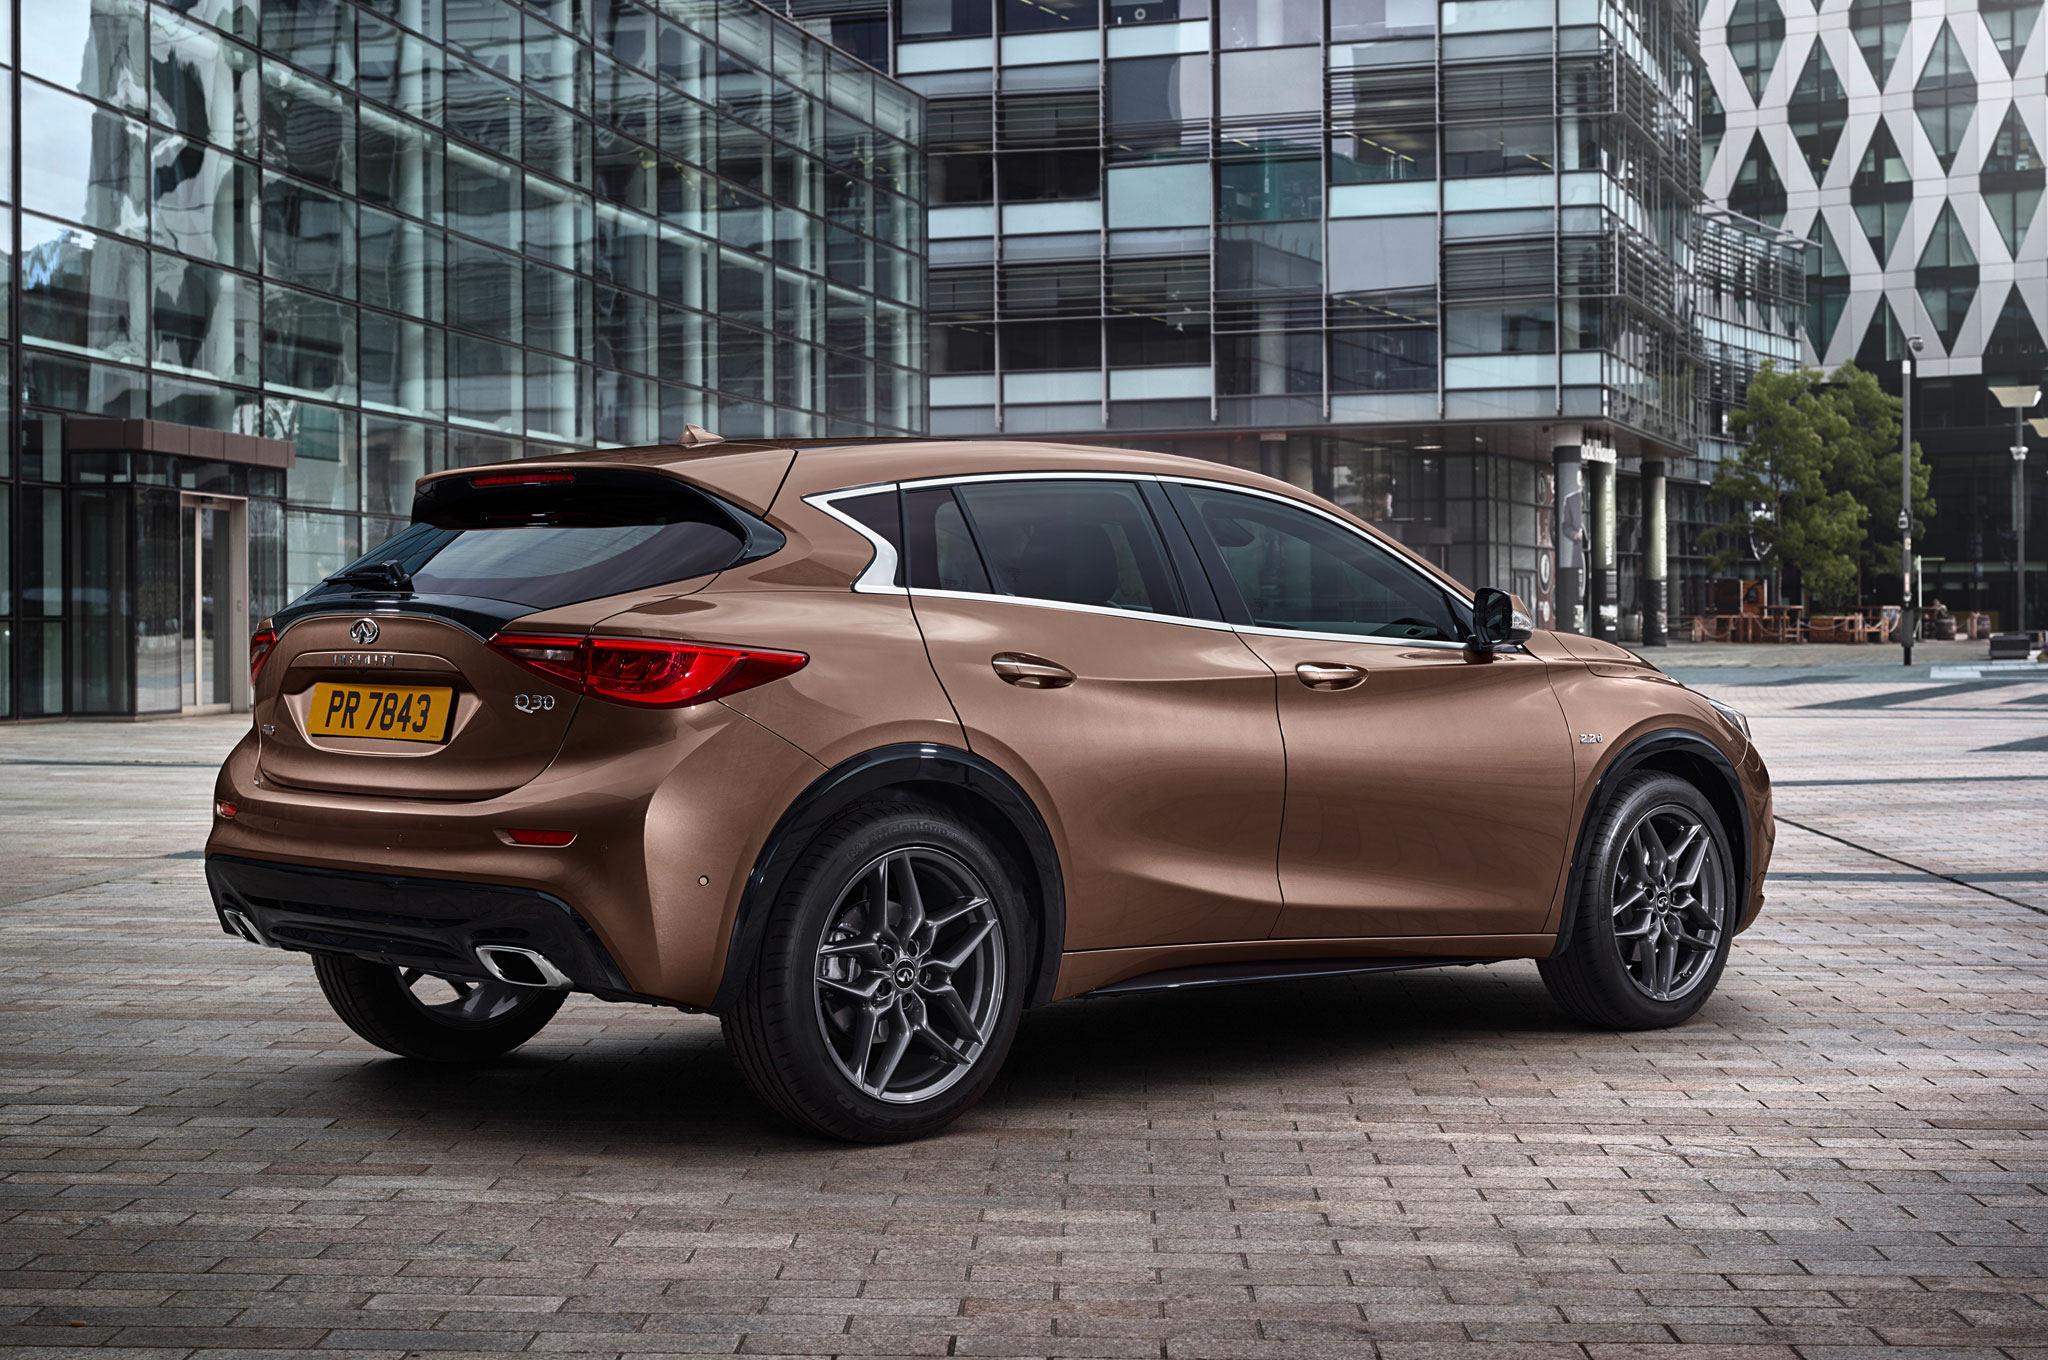 2017 infiniti q30 is the luxury brand's first compact hatchback